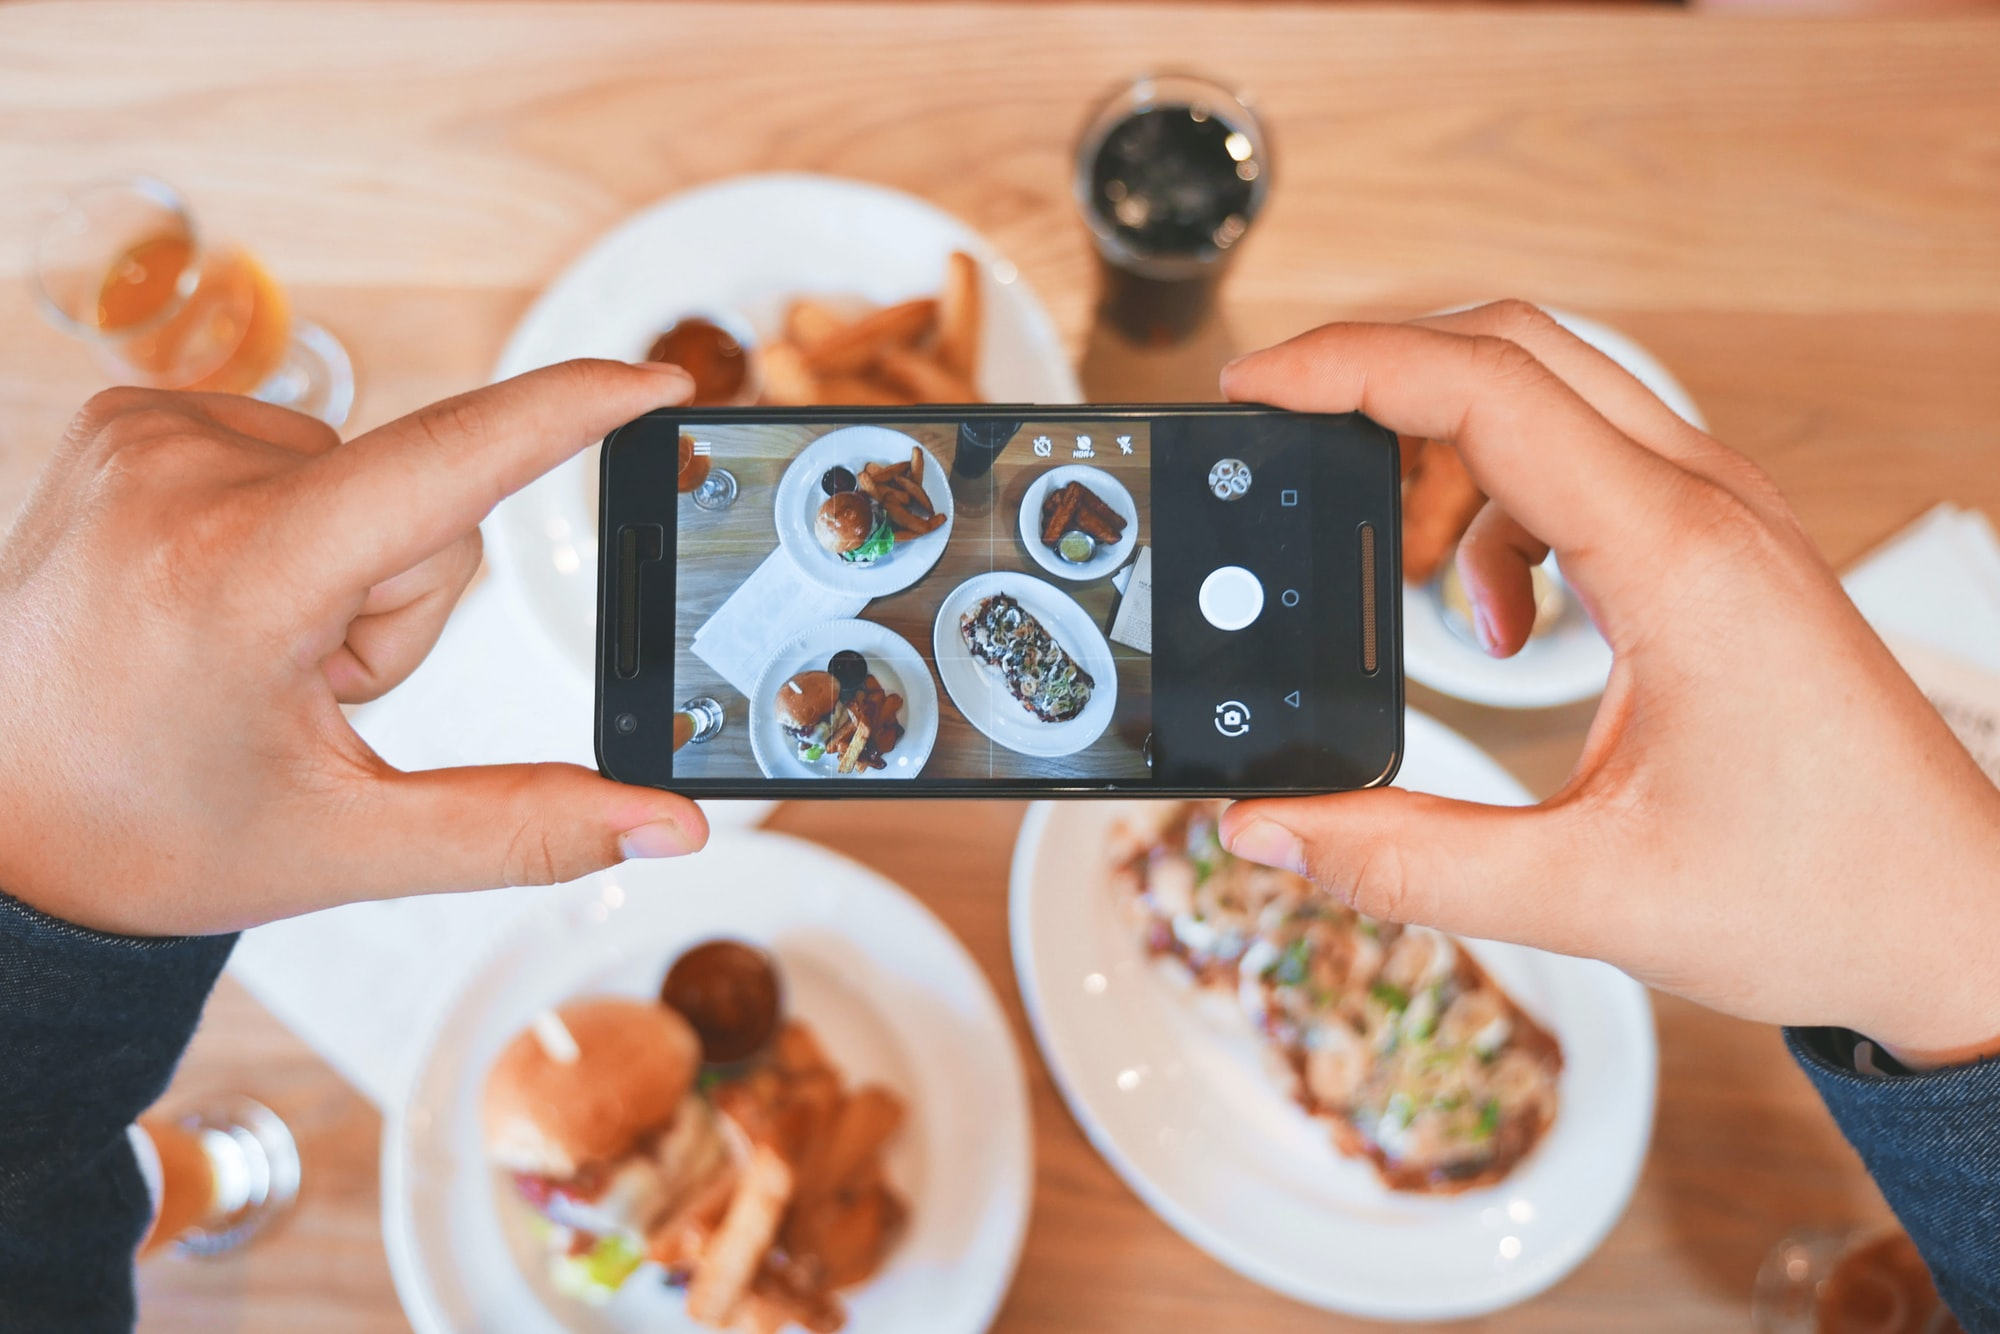 Person snapping photo of food